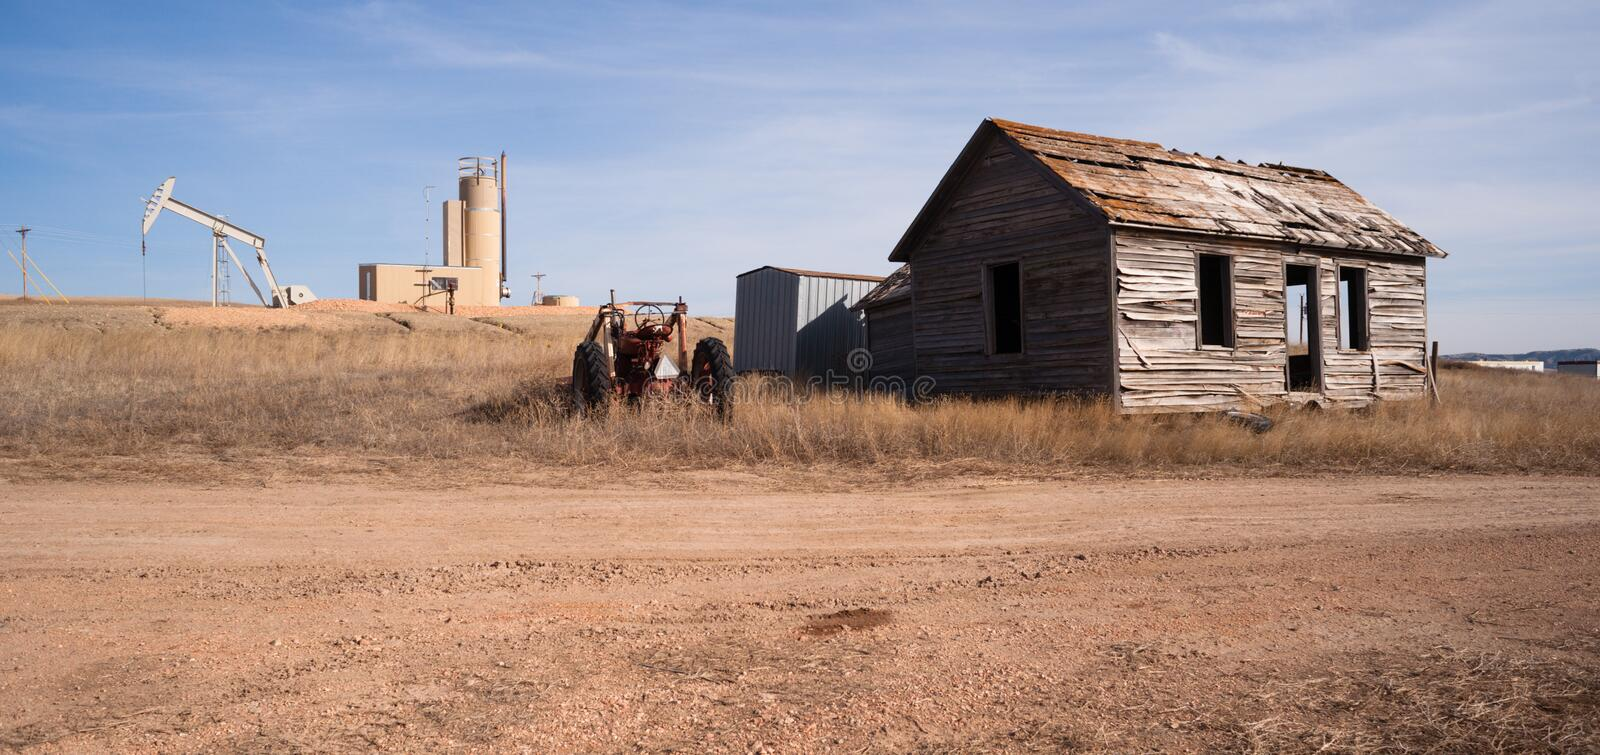 Fracking Operation Built on Previous Farmland Abandoned Cabin royalty free stock images